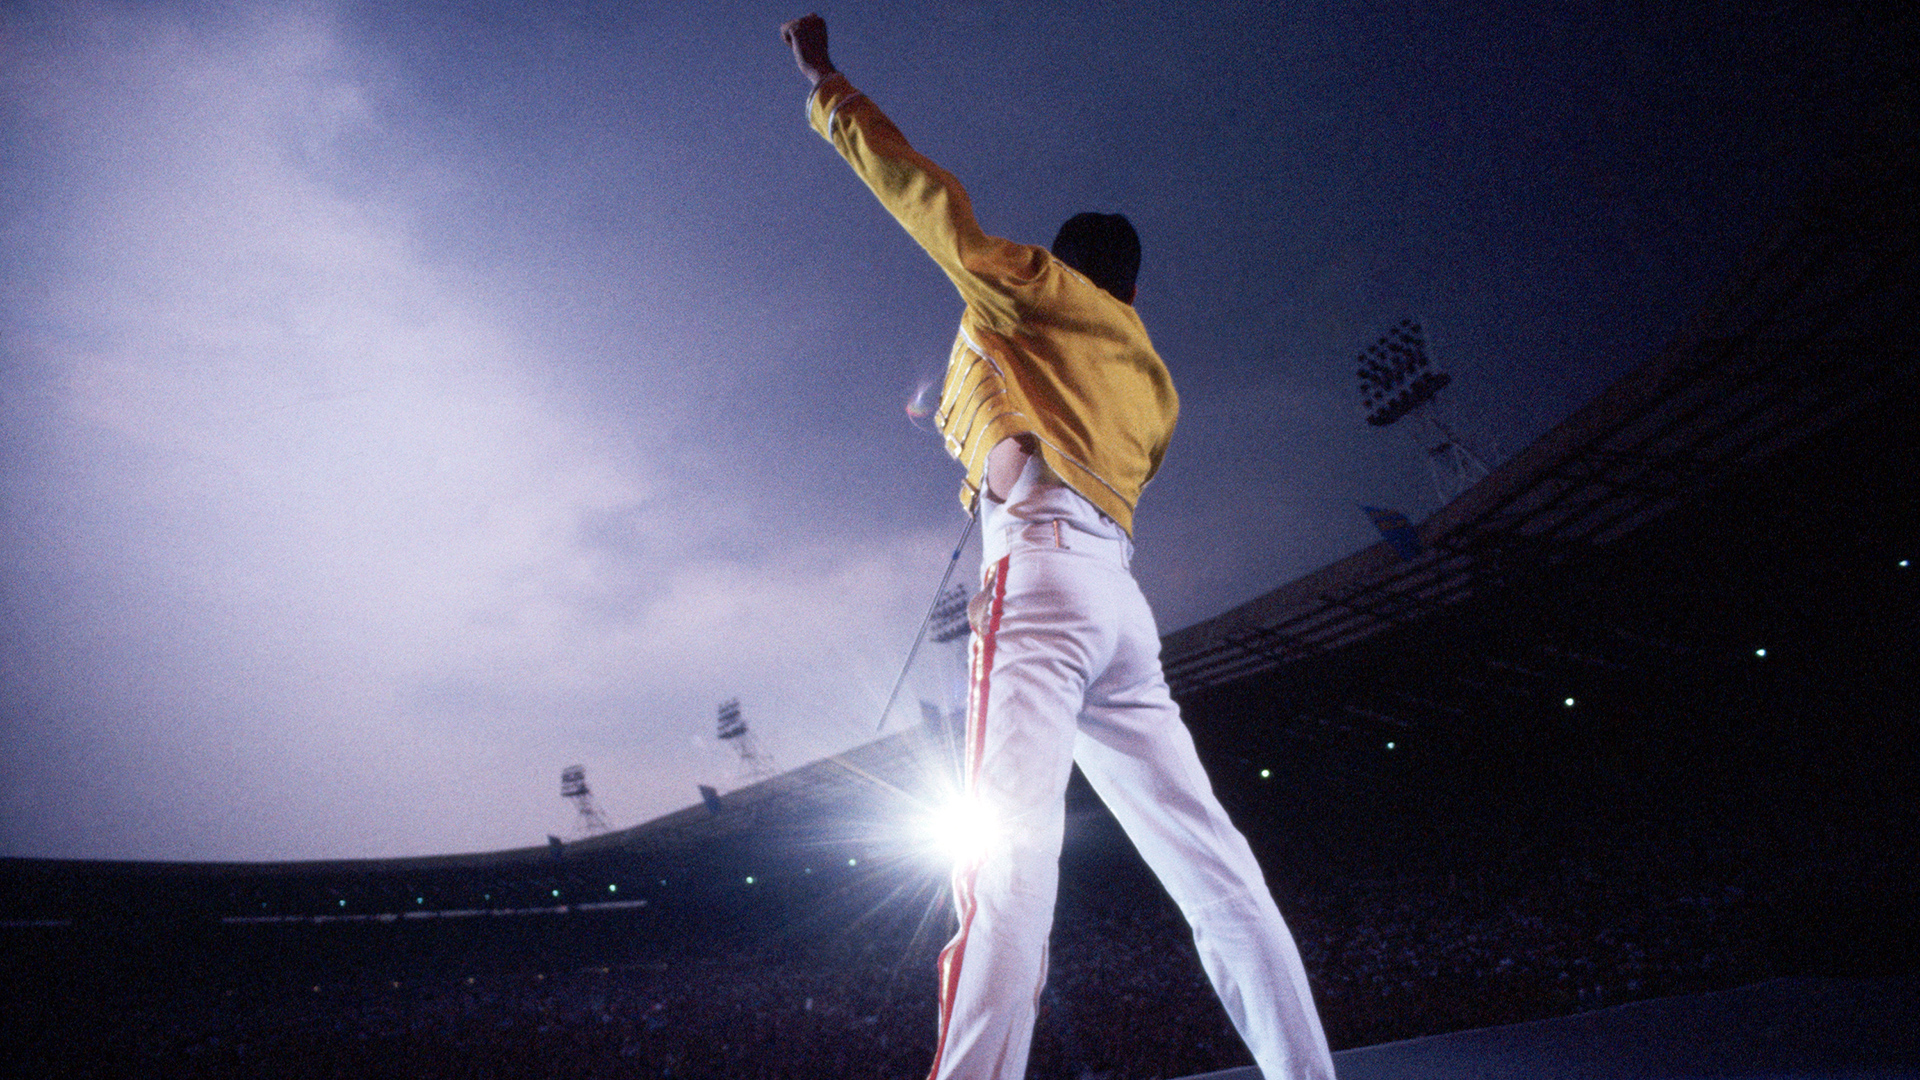 Live Wallpaper Fall Hd Viva Freddie Mercury If He Was Alive Today He Would